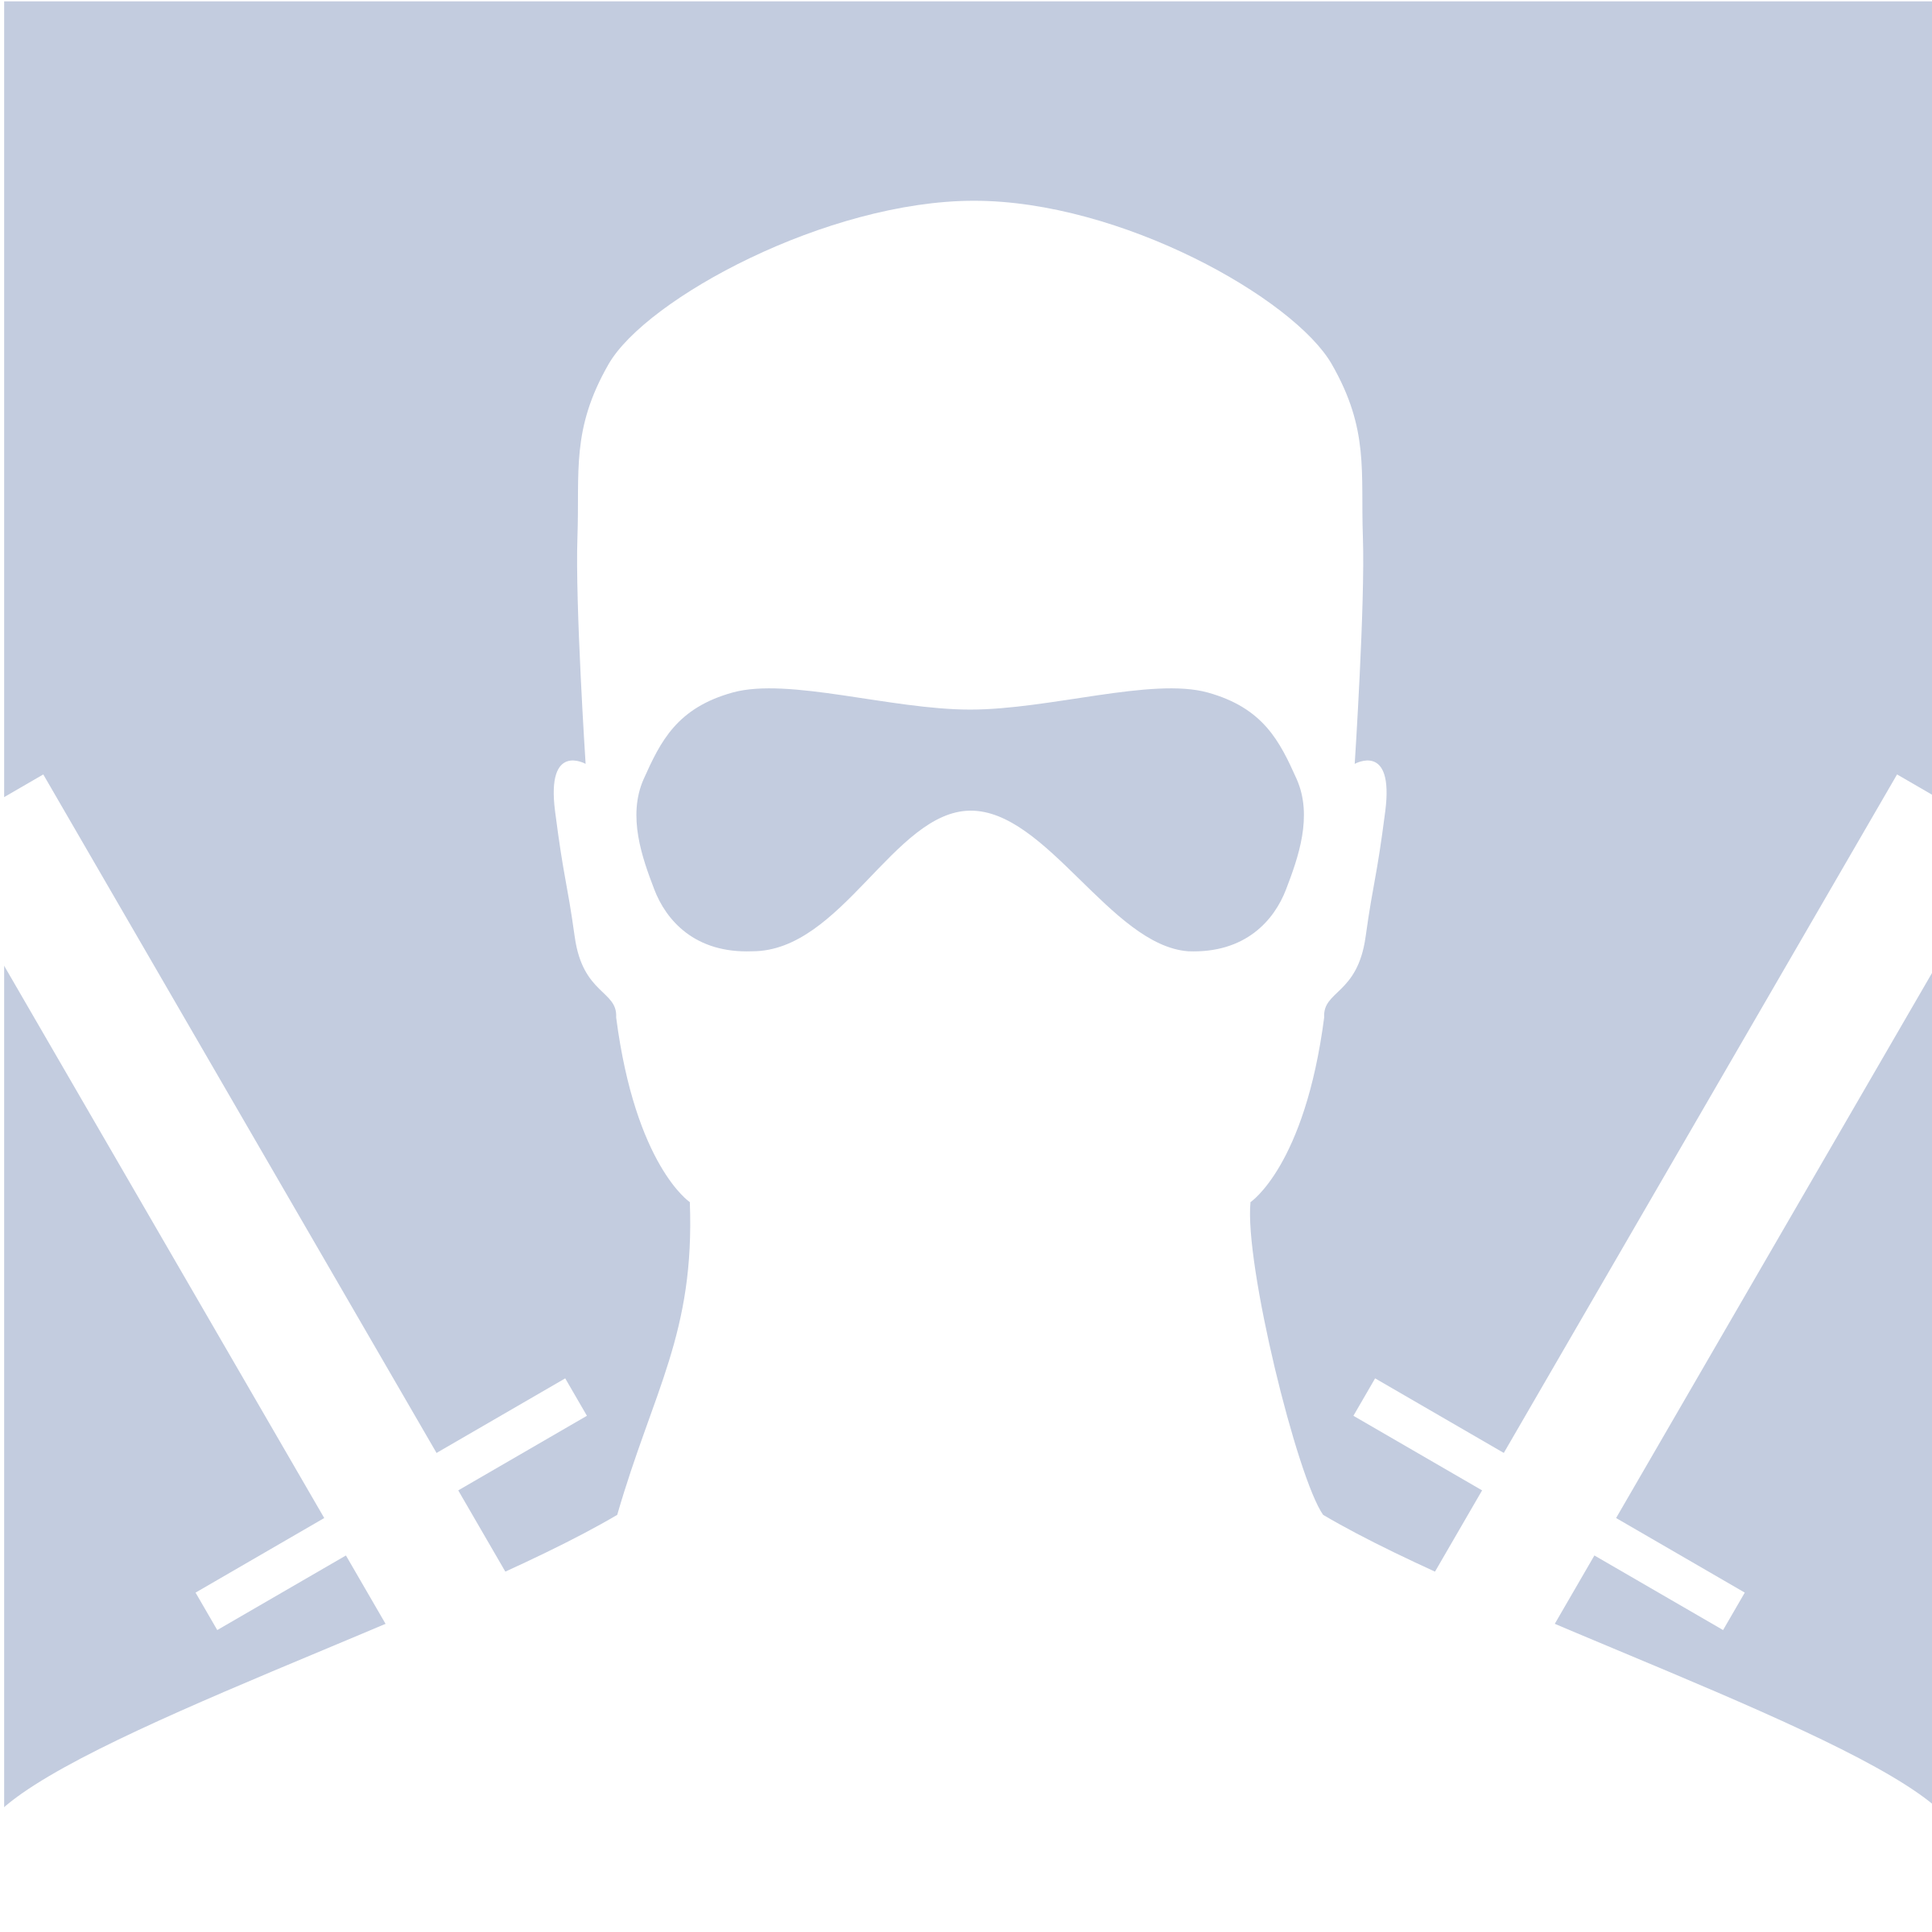 Ninja FB Profile by tuxwrench